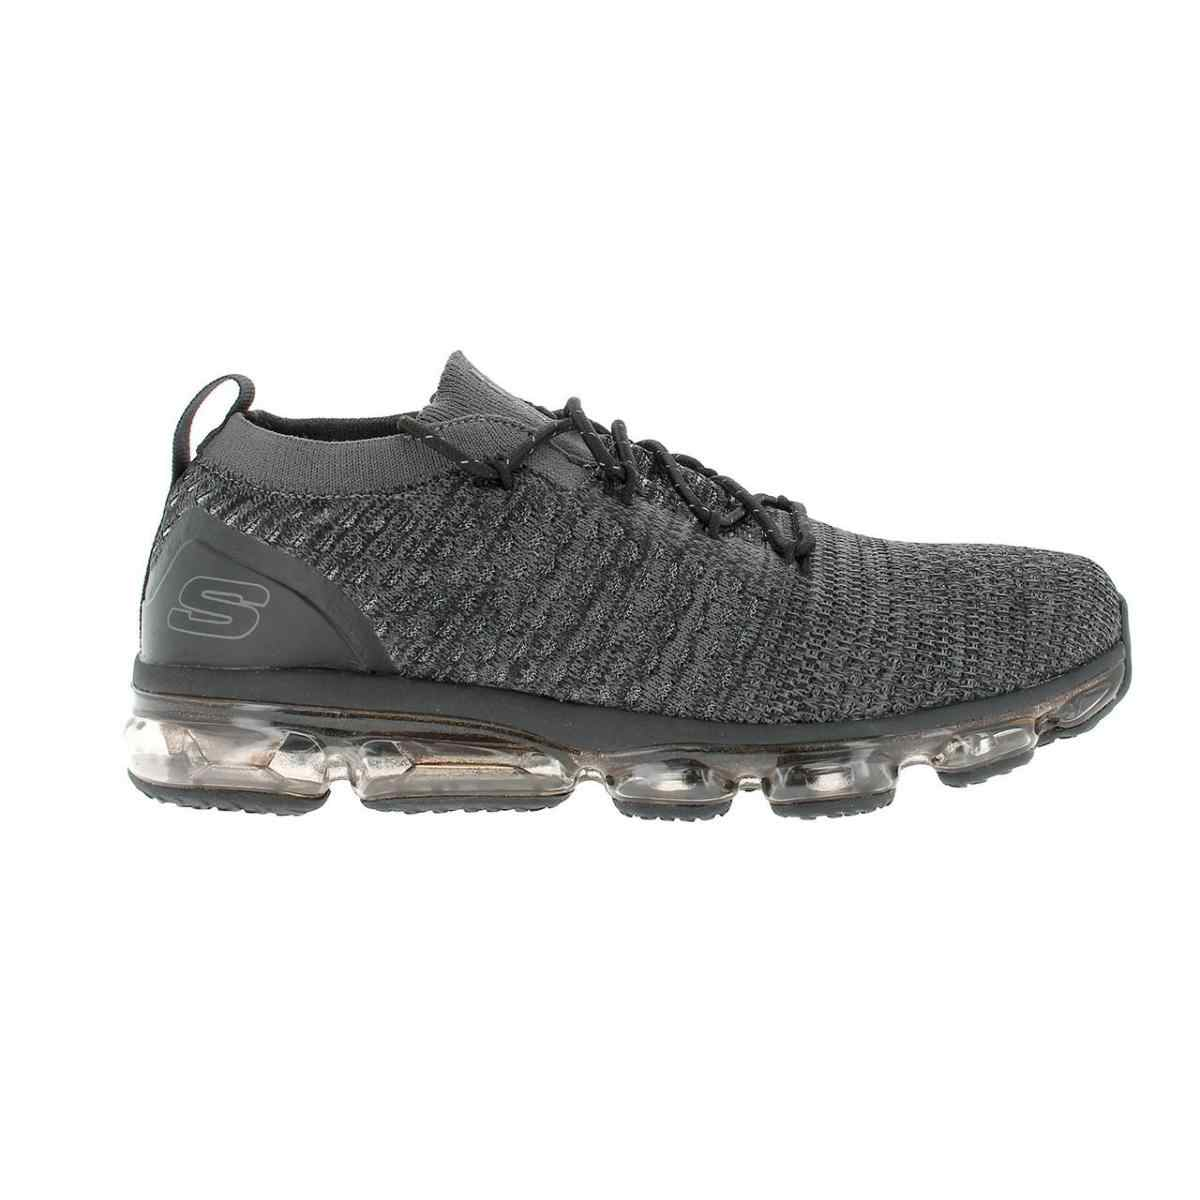 SKECHERS MAN TEXTILE SNEAKERS - 11.11_Double 11_Singles